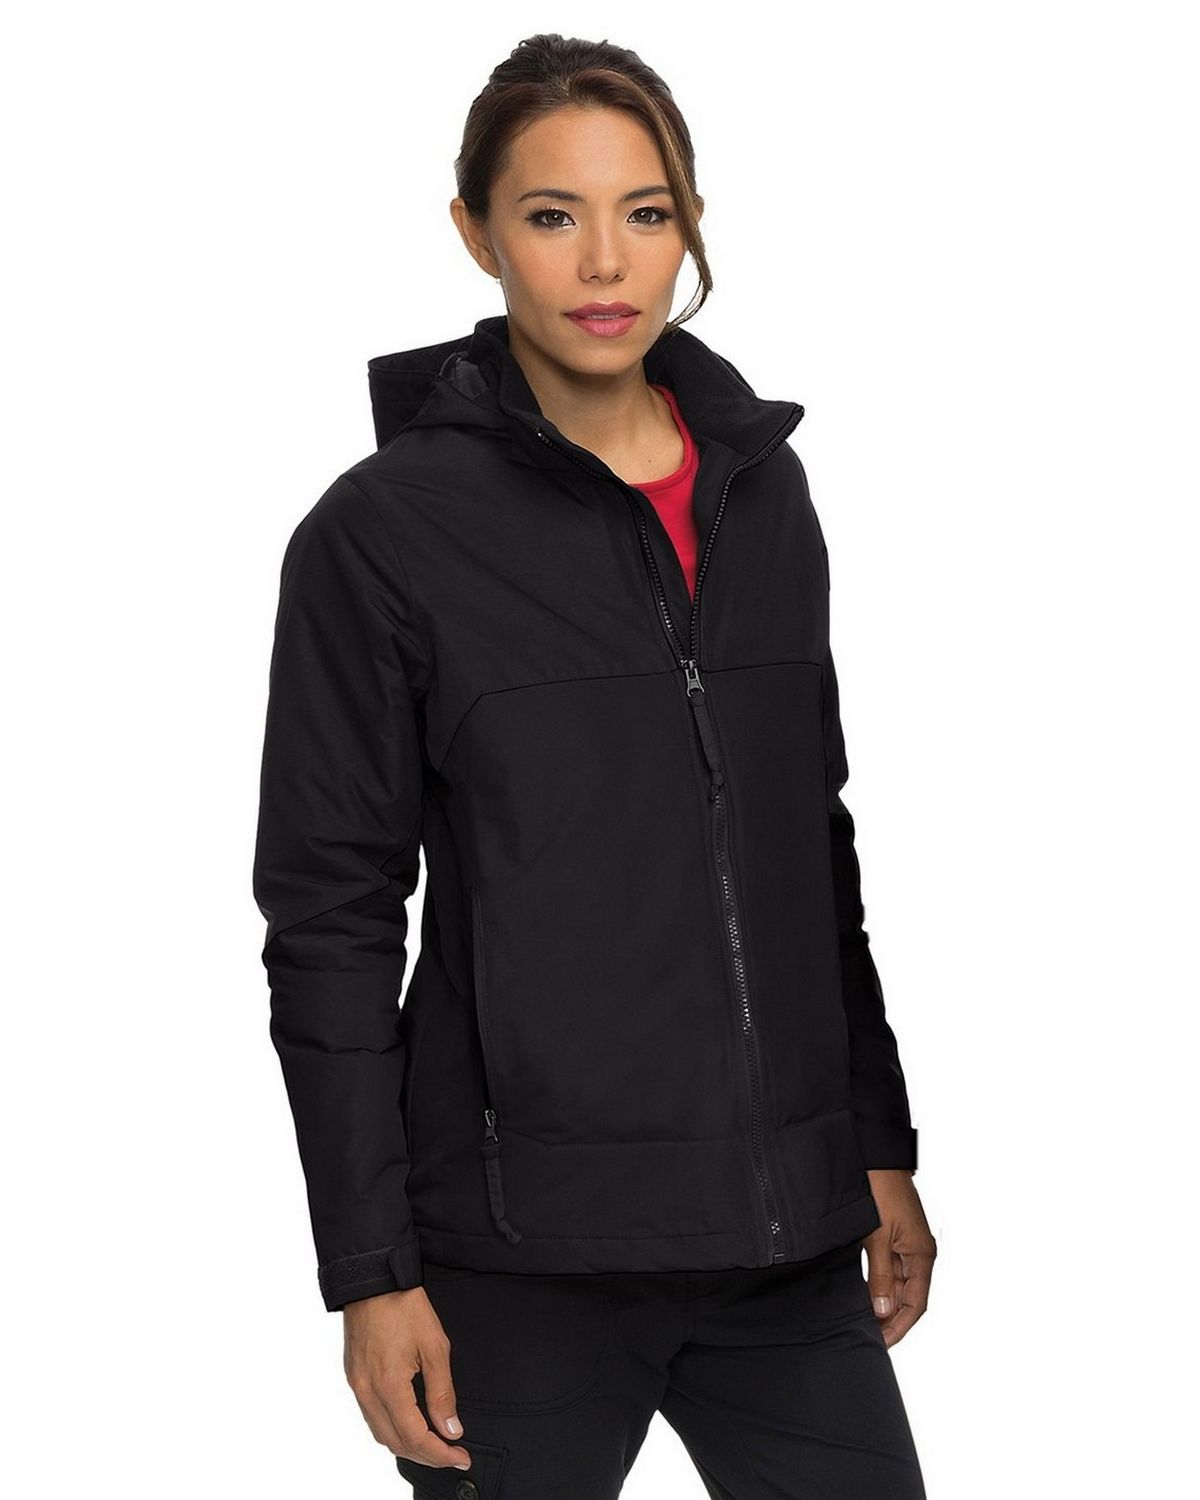 Tri-Mountain Jl8920 Womens Nylon Jacket - Red/Black - XS JL8920